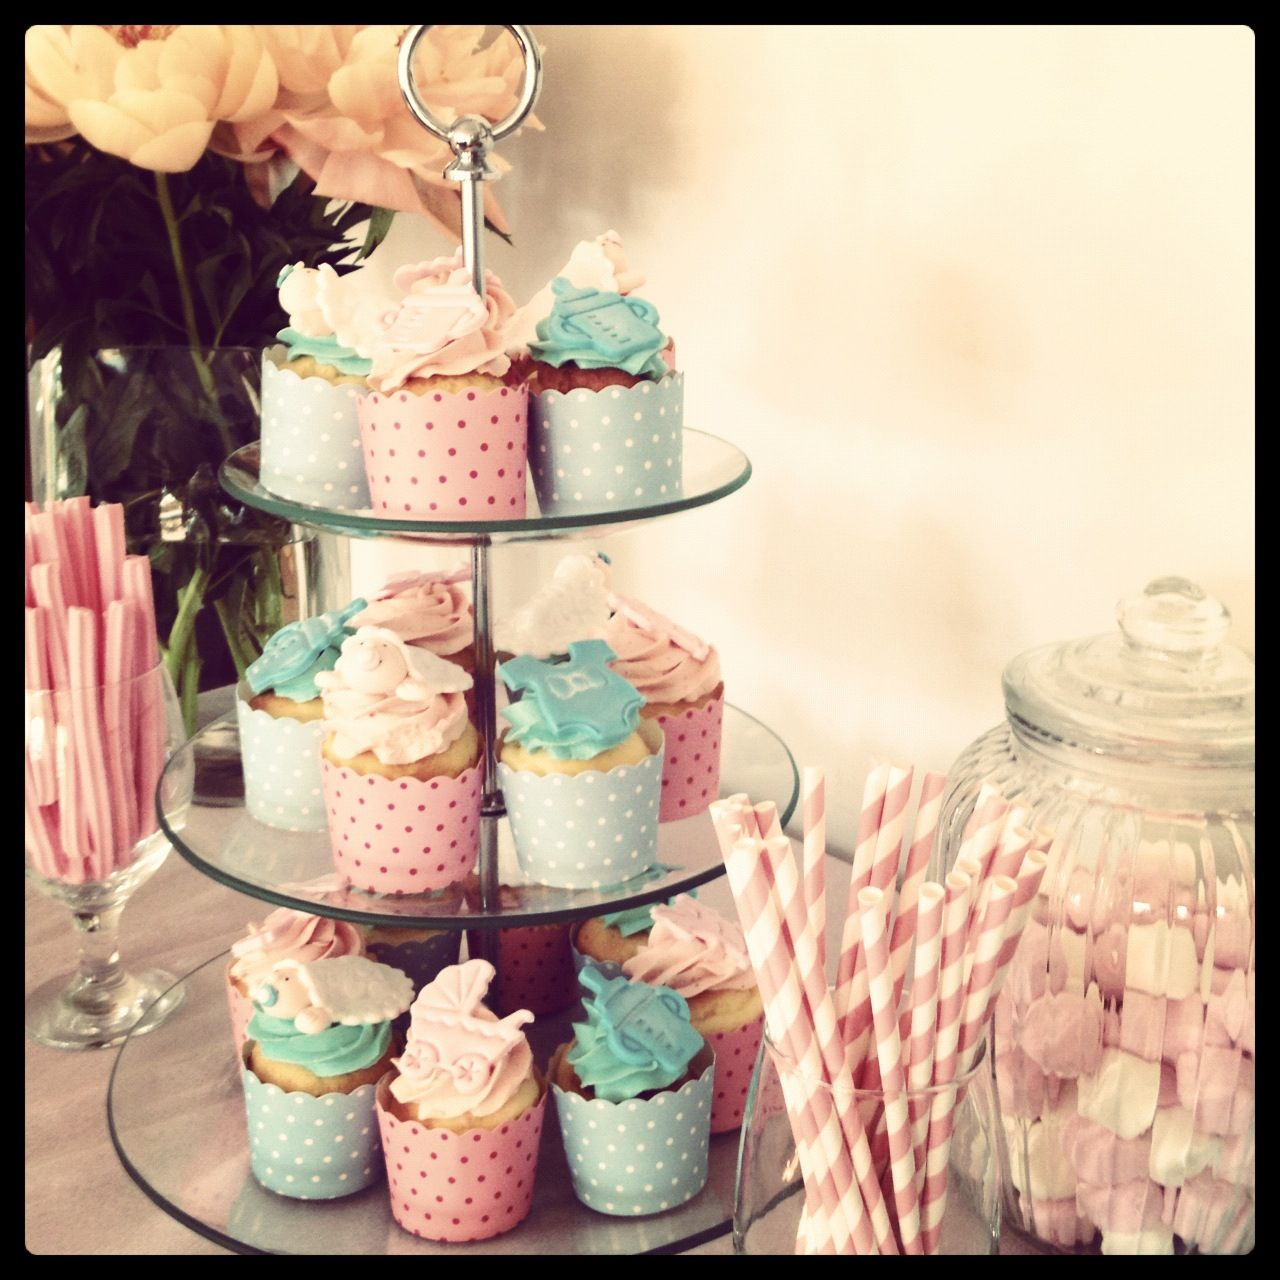 Beautiful cupcakes for a baby shower with images